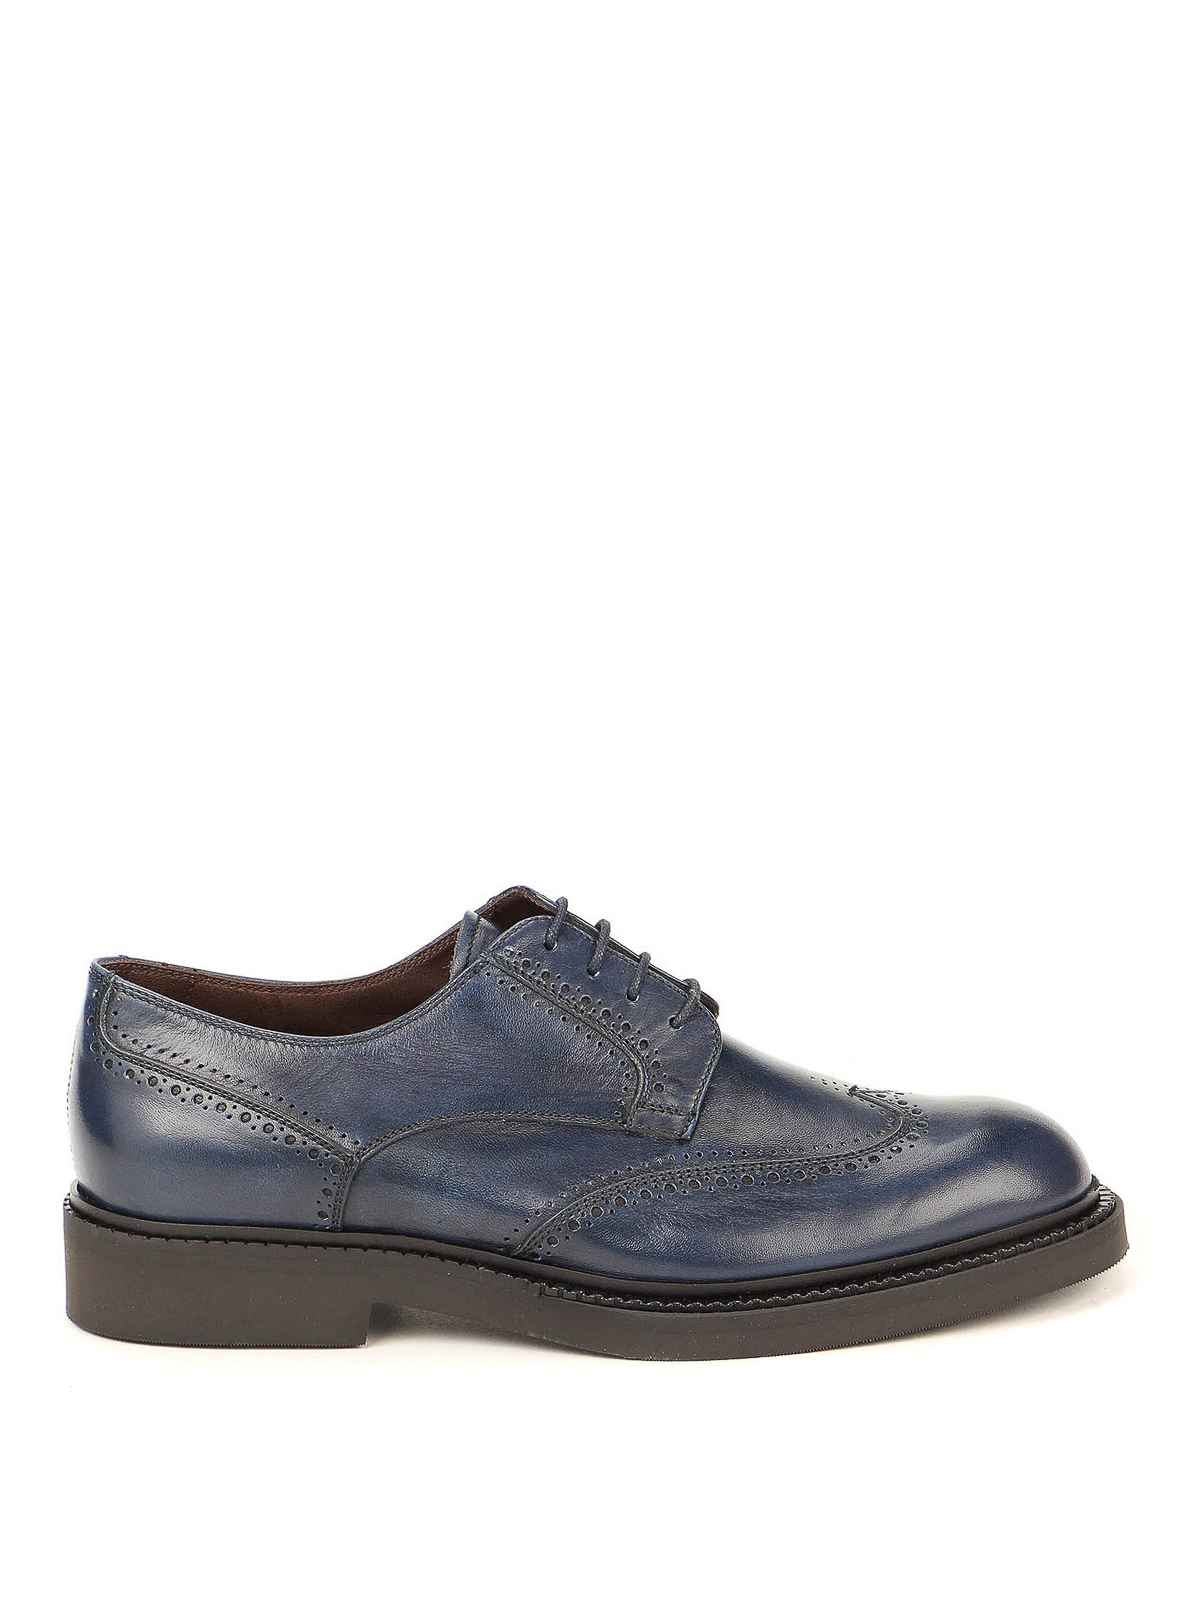 Fratelli Rossetti BROGUE DERBY SHOES